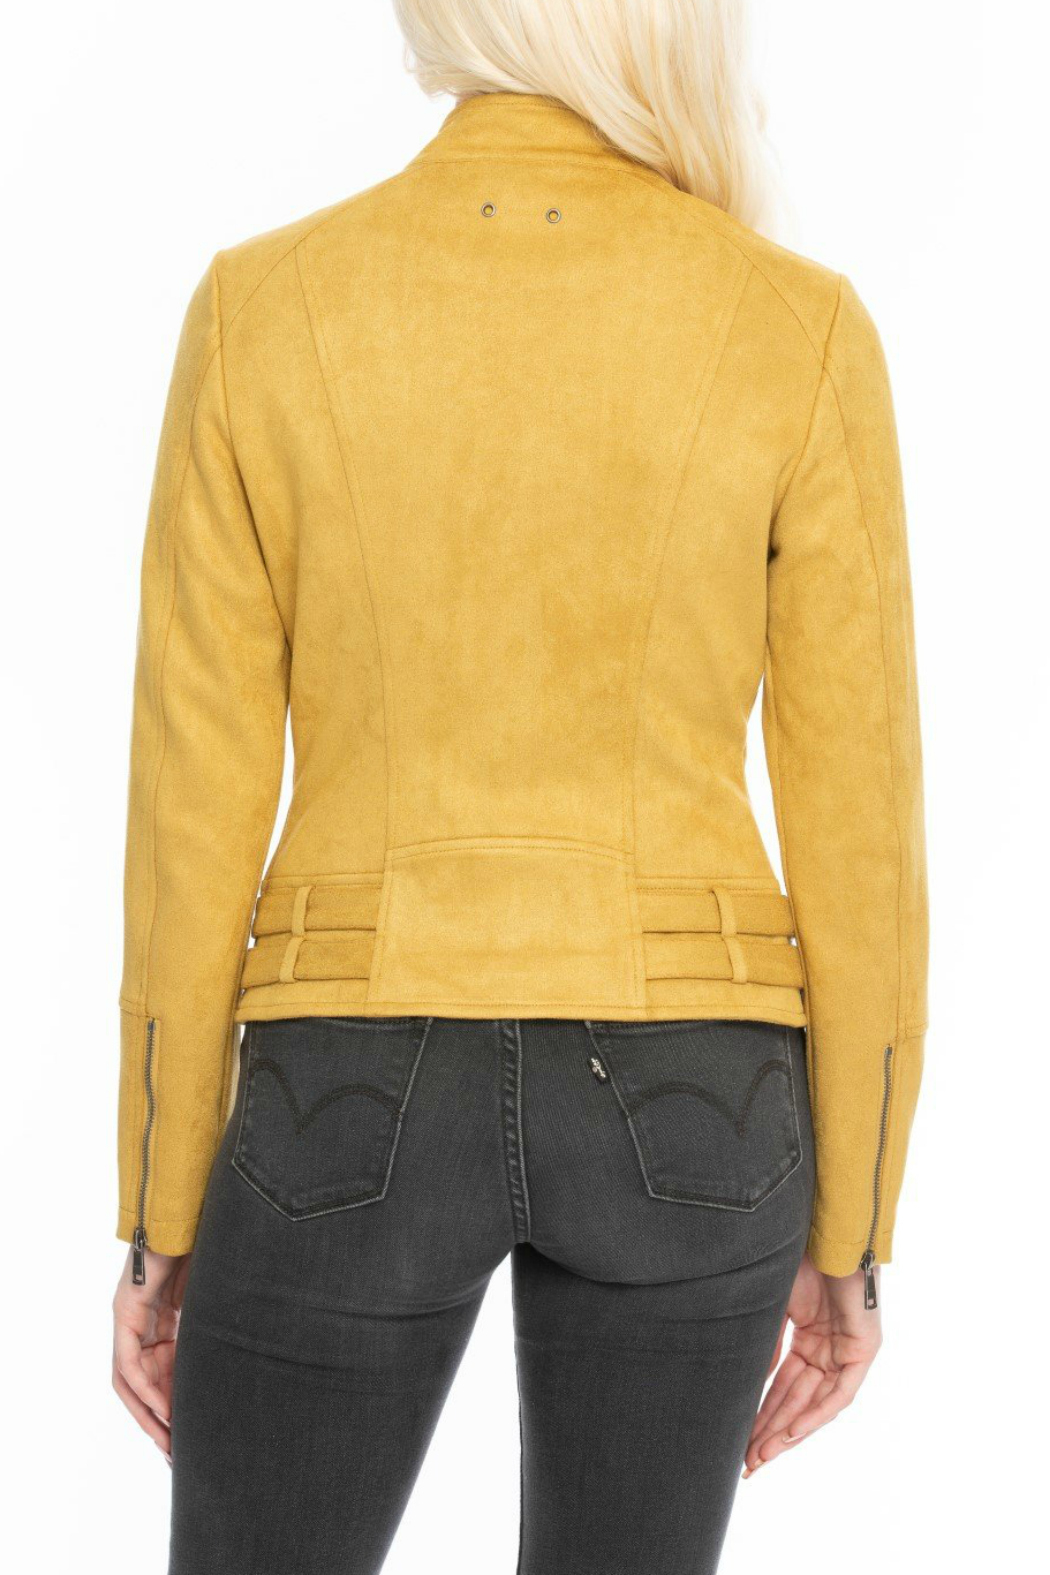 Coalition Well suede jacket - Front Full Image